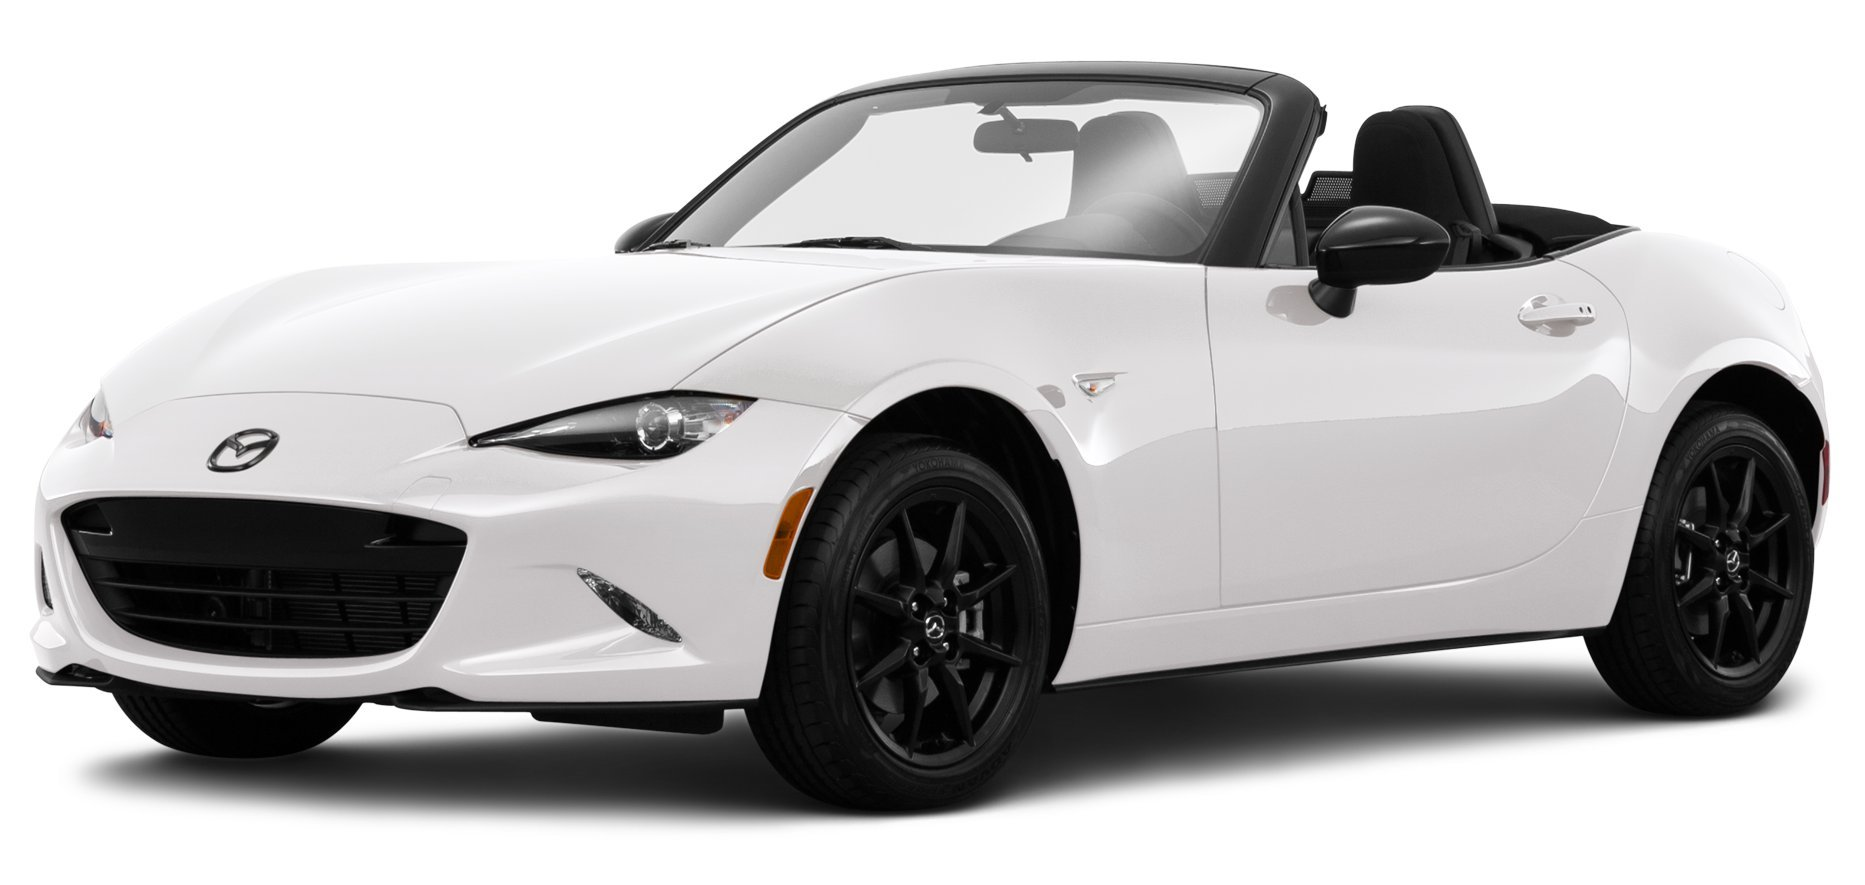 2 Door Convertible >> Amazon Com 2016 Mazda Mx 5 Miata Reviews Images And Specs Vehicles